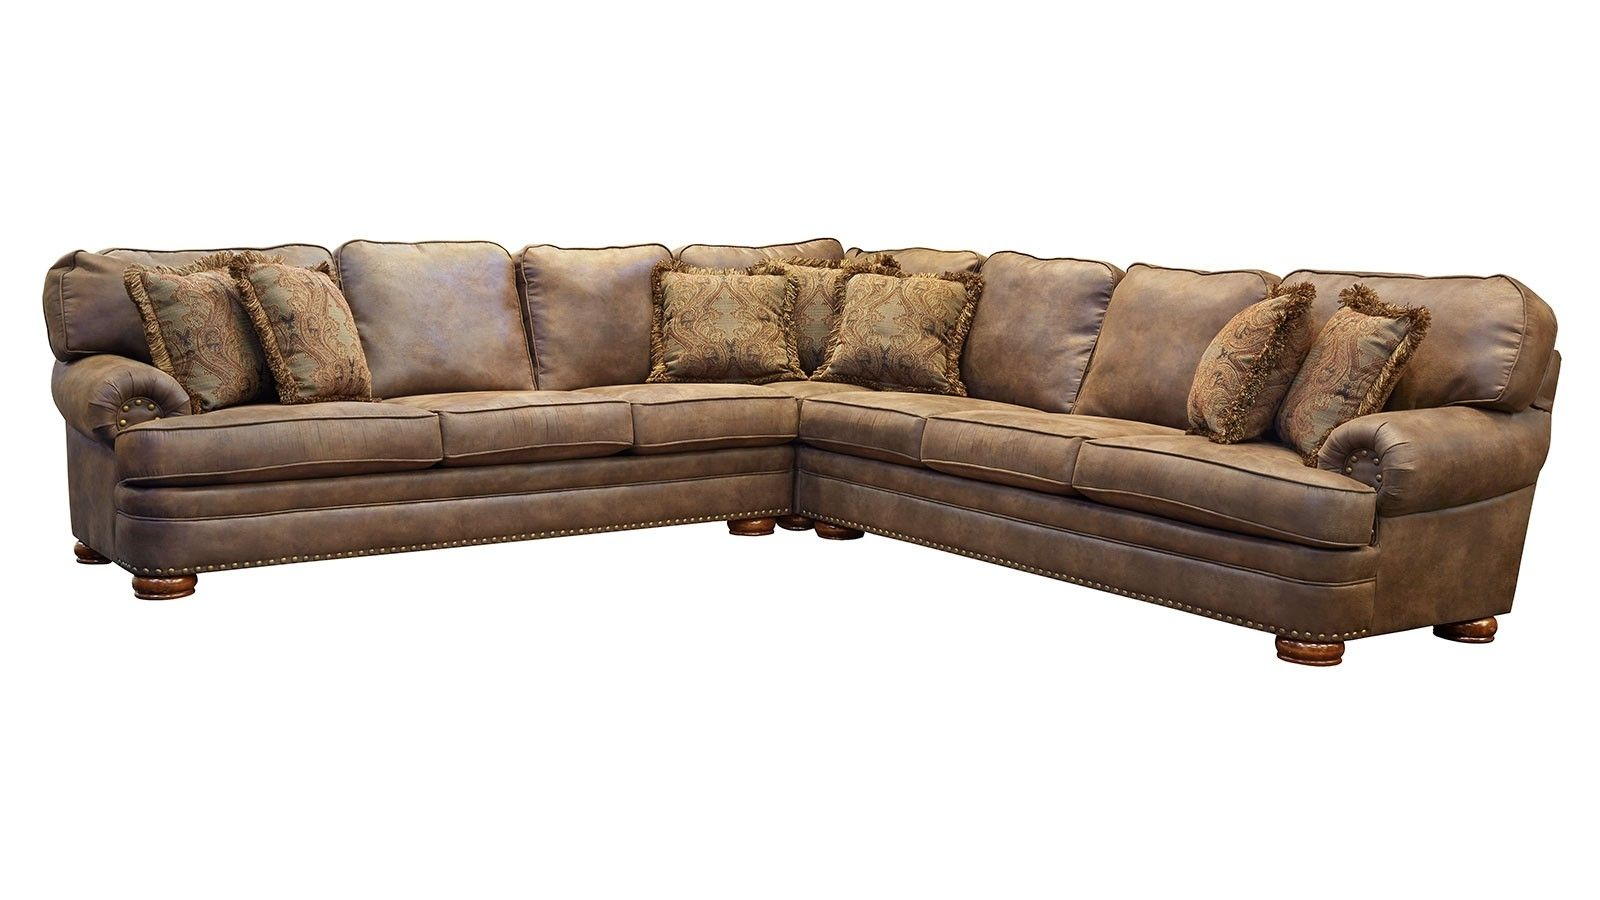 10 Best El Paso Sectional Sofas | Sofa Ideas